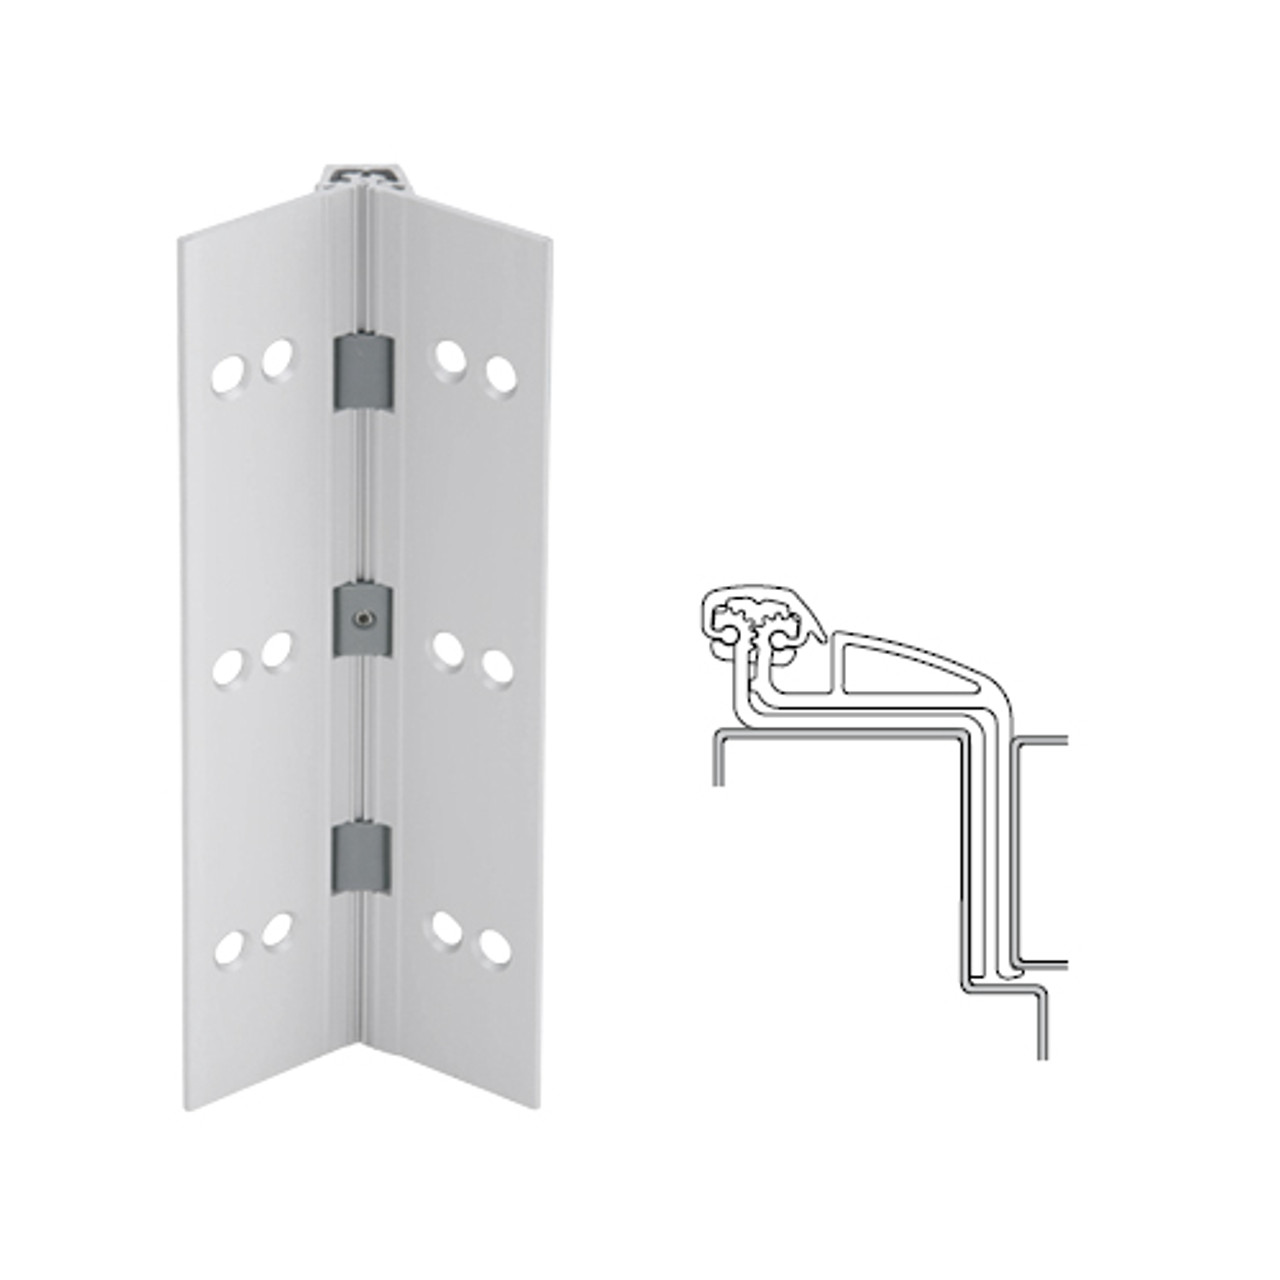 041XY-US28-95-SECHM IVES Full Mortise Continuous Geared Hinges with Security Screws - Hex Pin Drive in Satin Aluminum